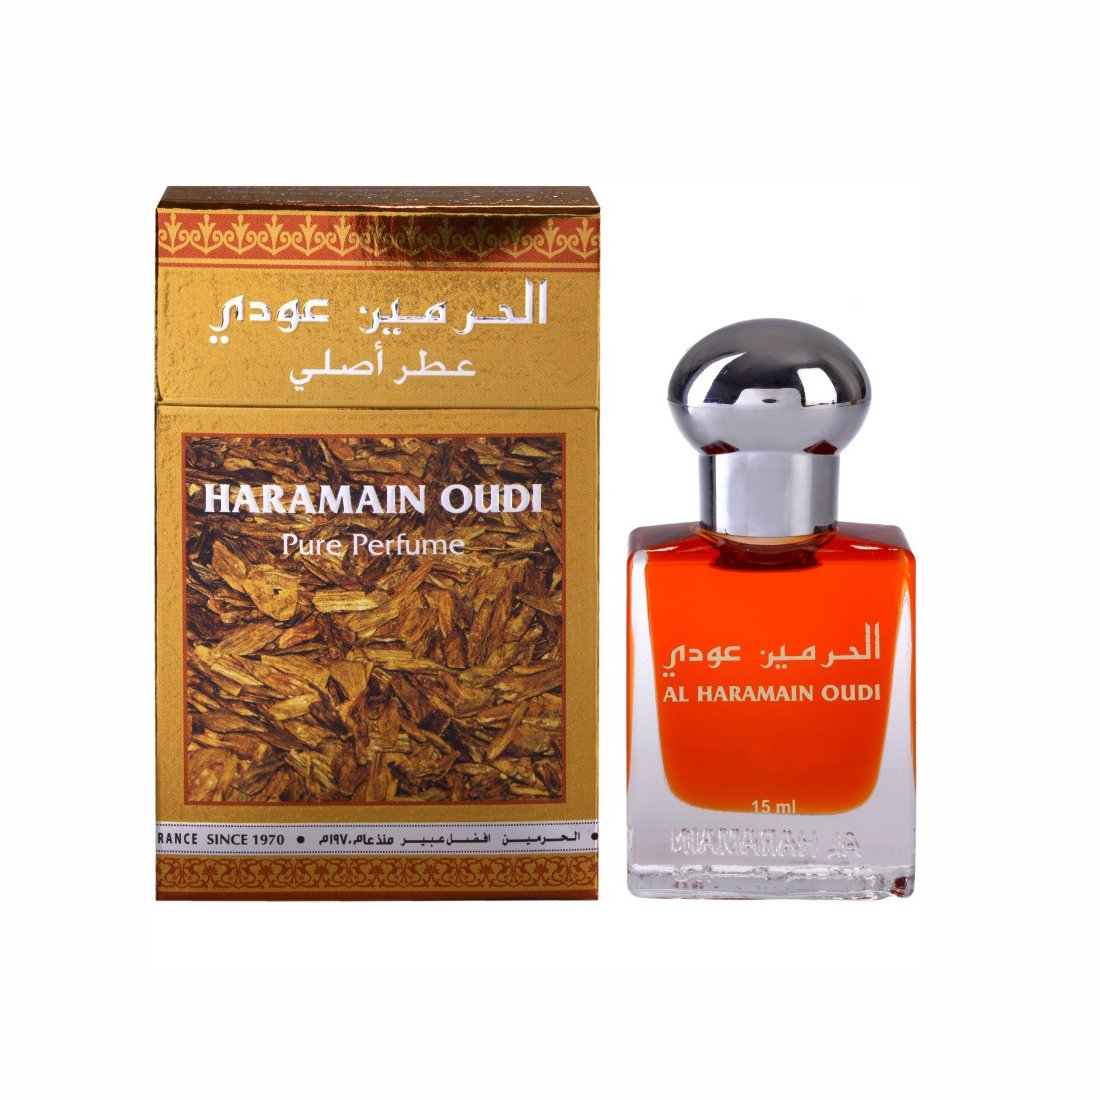 Al Haramain Oudi Fragrance Pure Original Roll on Perfume Oil (Attar) - 15 ml